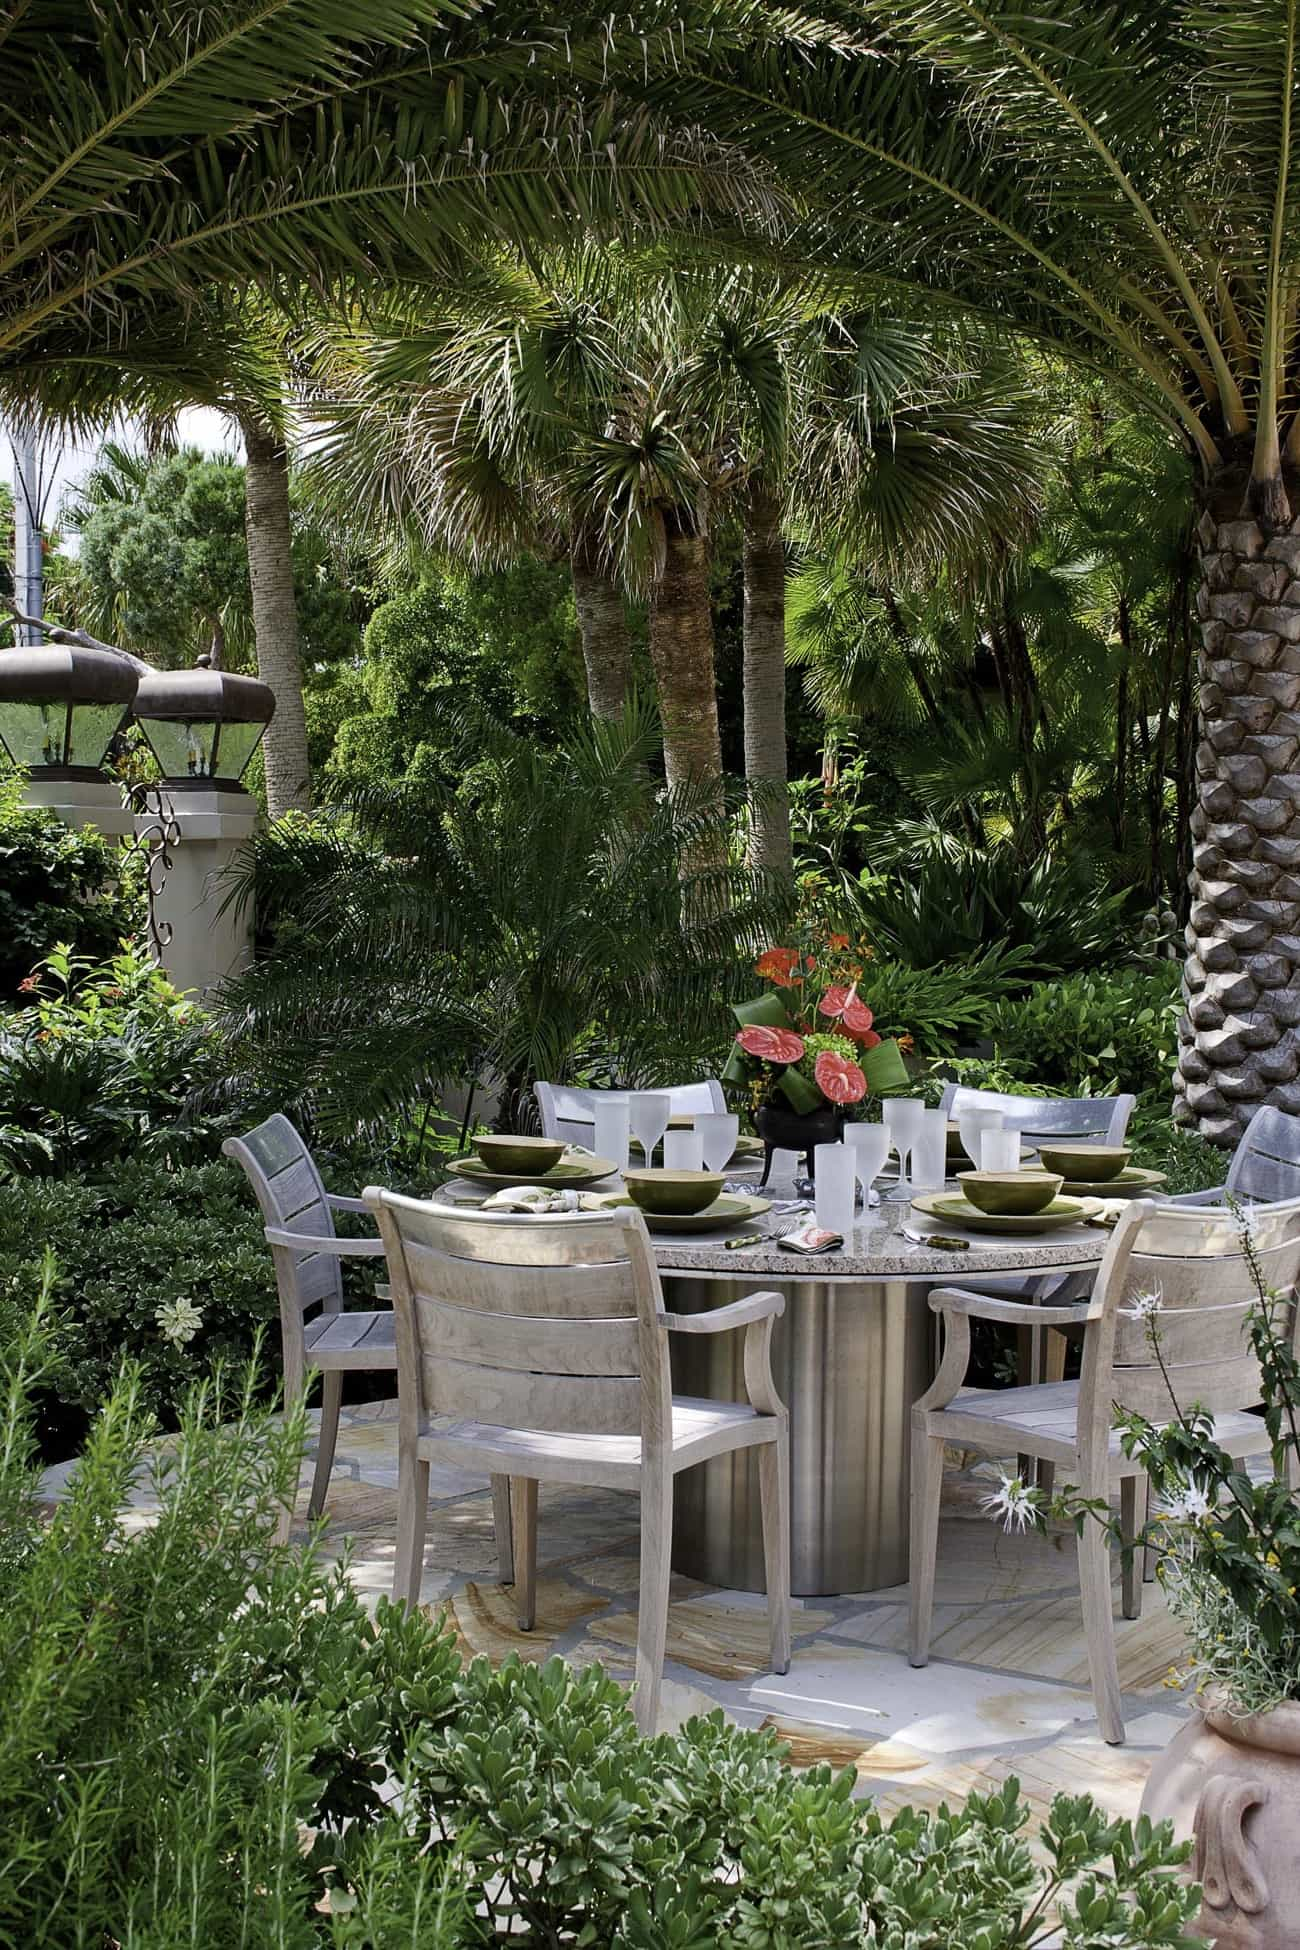 Romantic Outdoor Dining Table Under Palm Trees (Image 6 of 8)